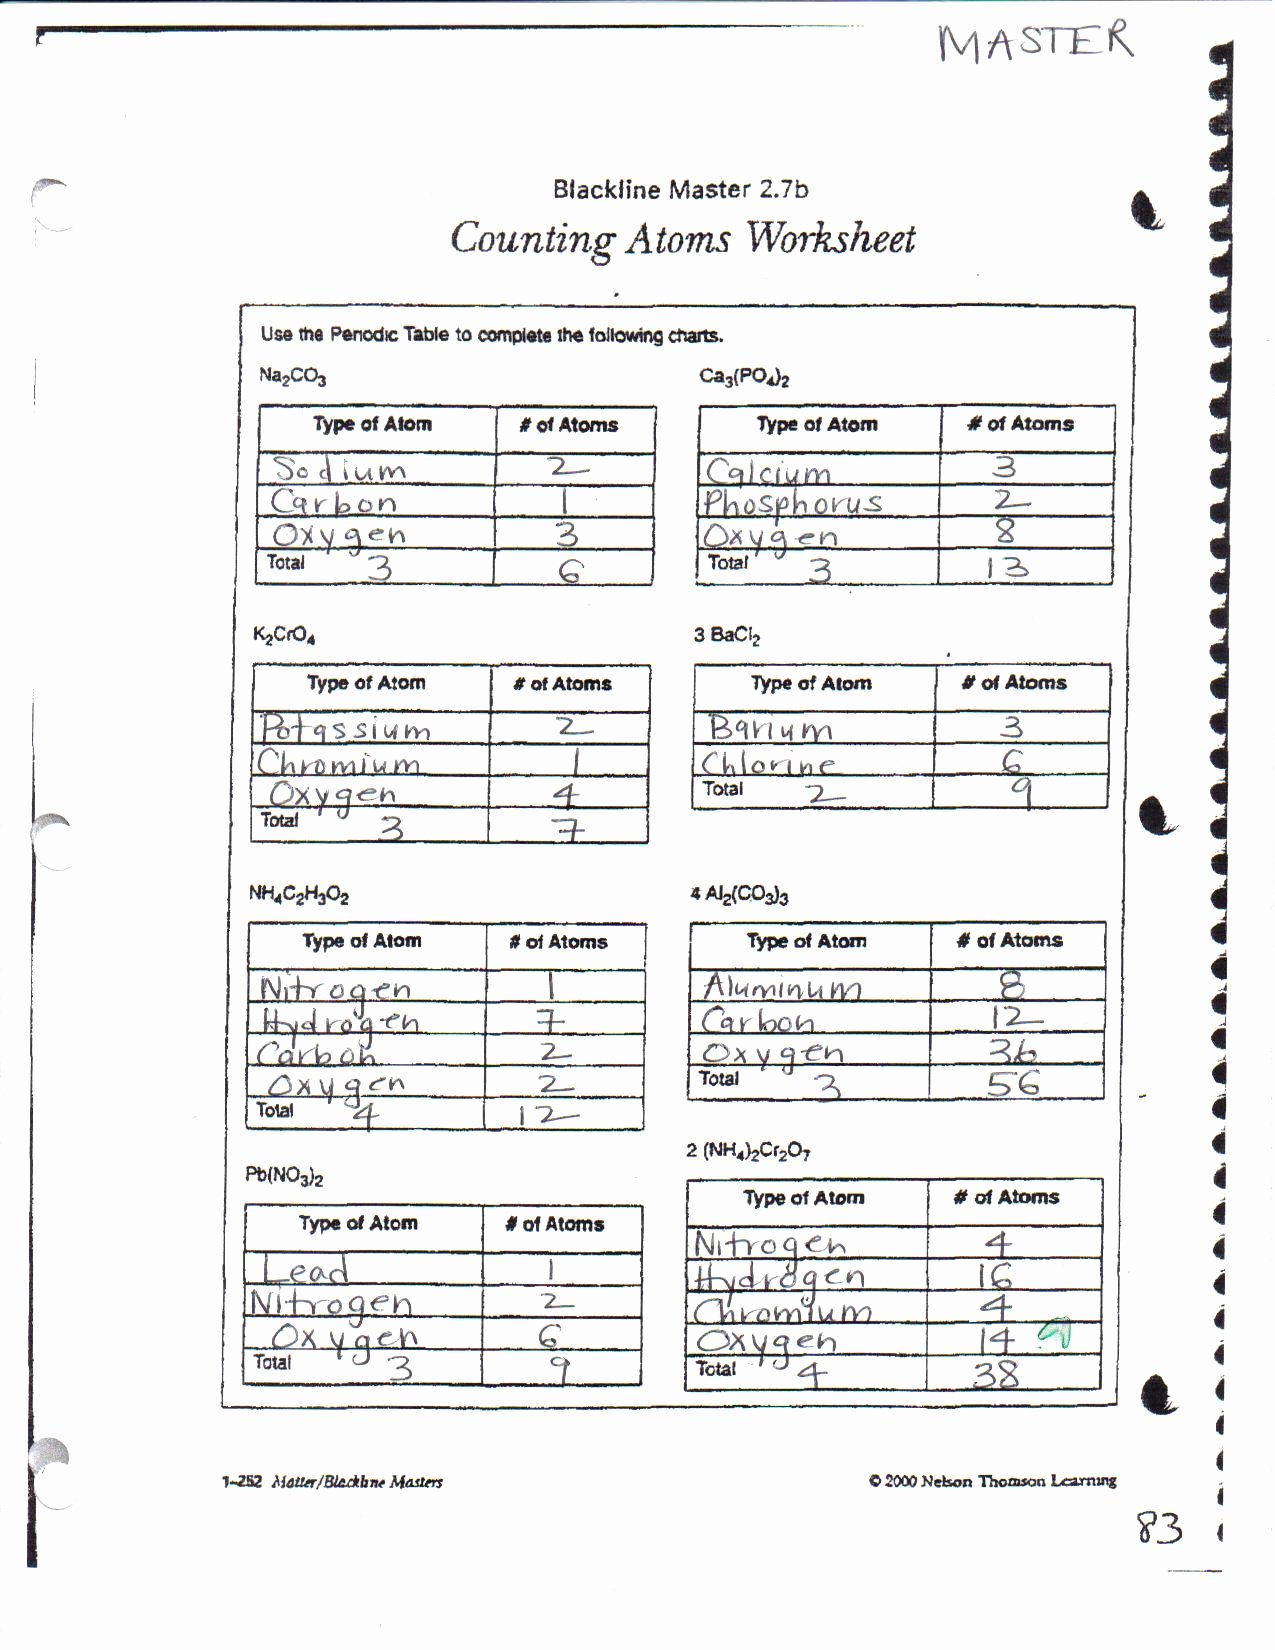 Atoms and Elements Worksheet Lovely atoms Elements and Pounds Worksheet Answers Ourclipart